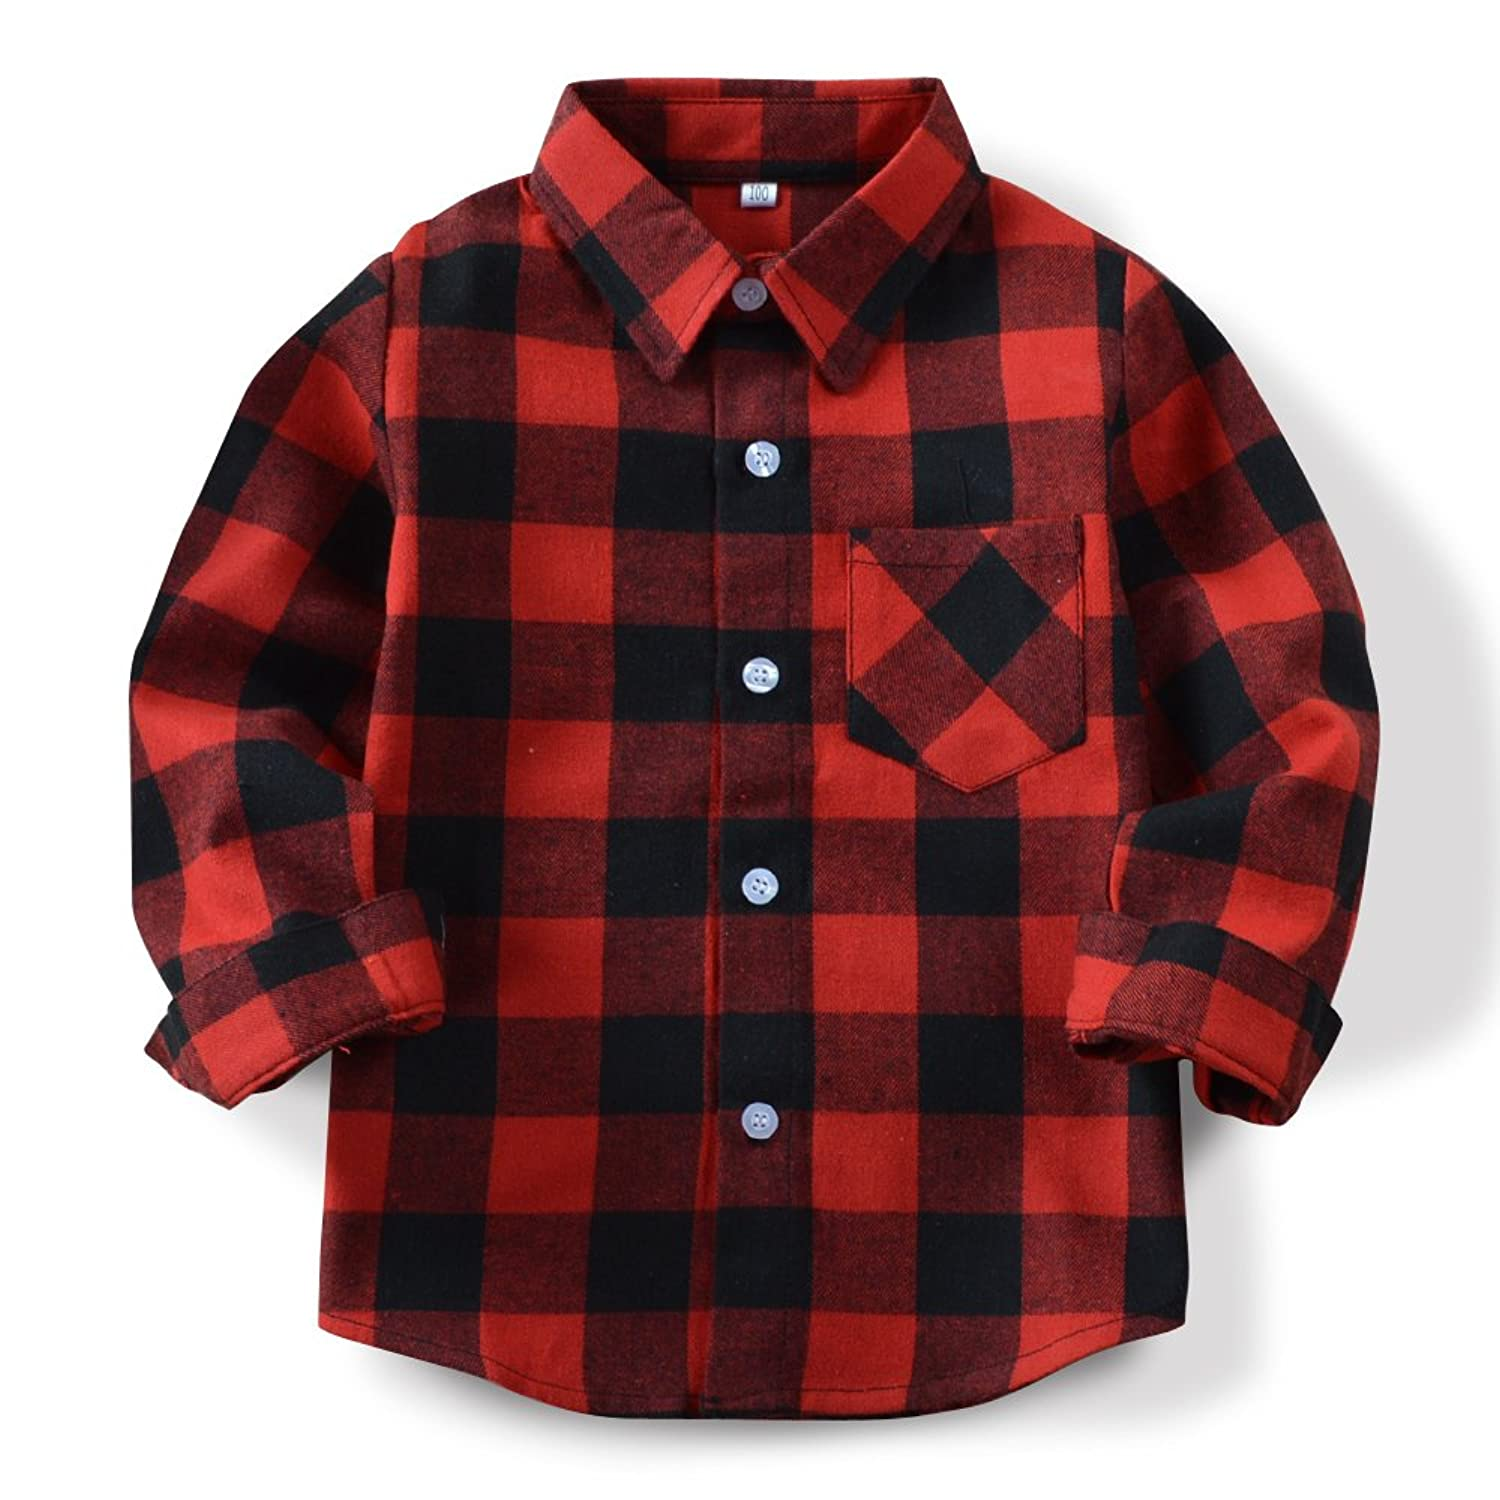 A Pagom Baby's Boys' Girls' Long Sleeve Button Down Plaid Flannel Fashionable Shirt